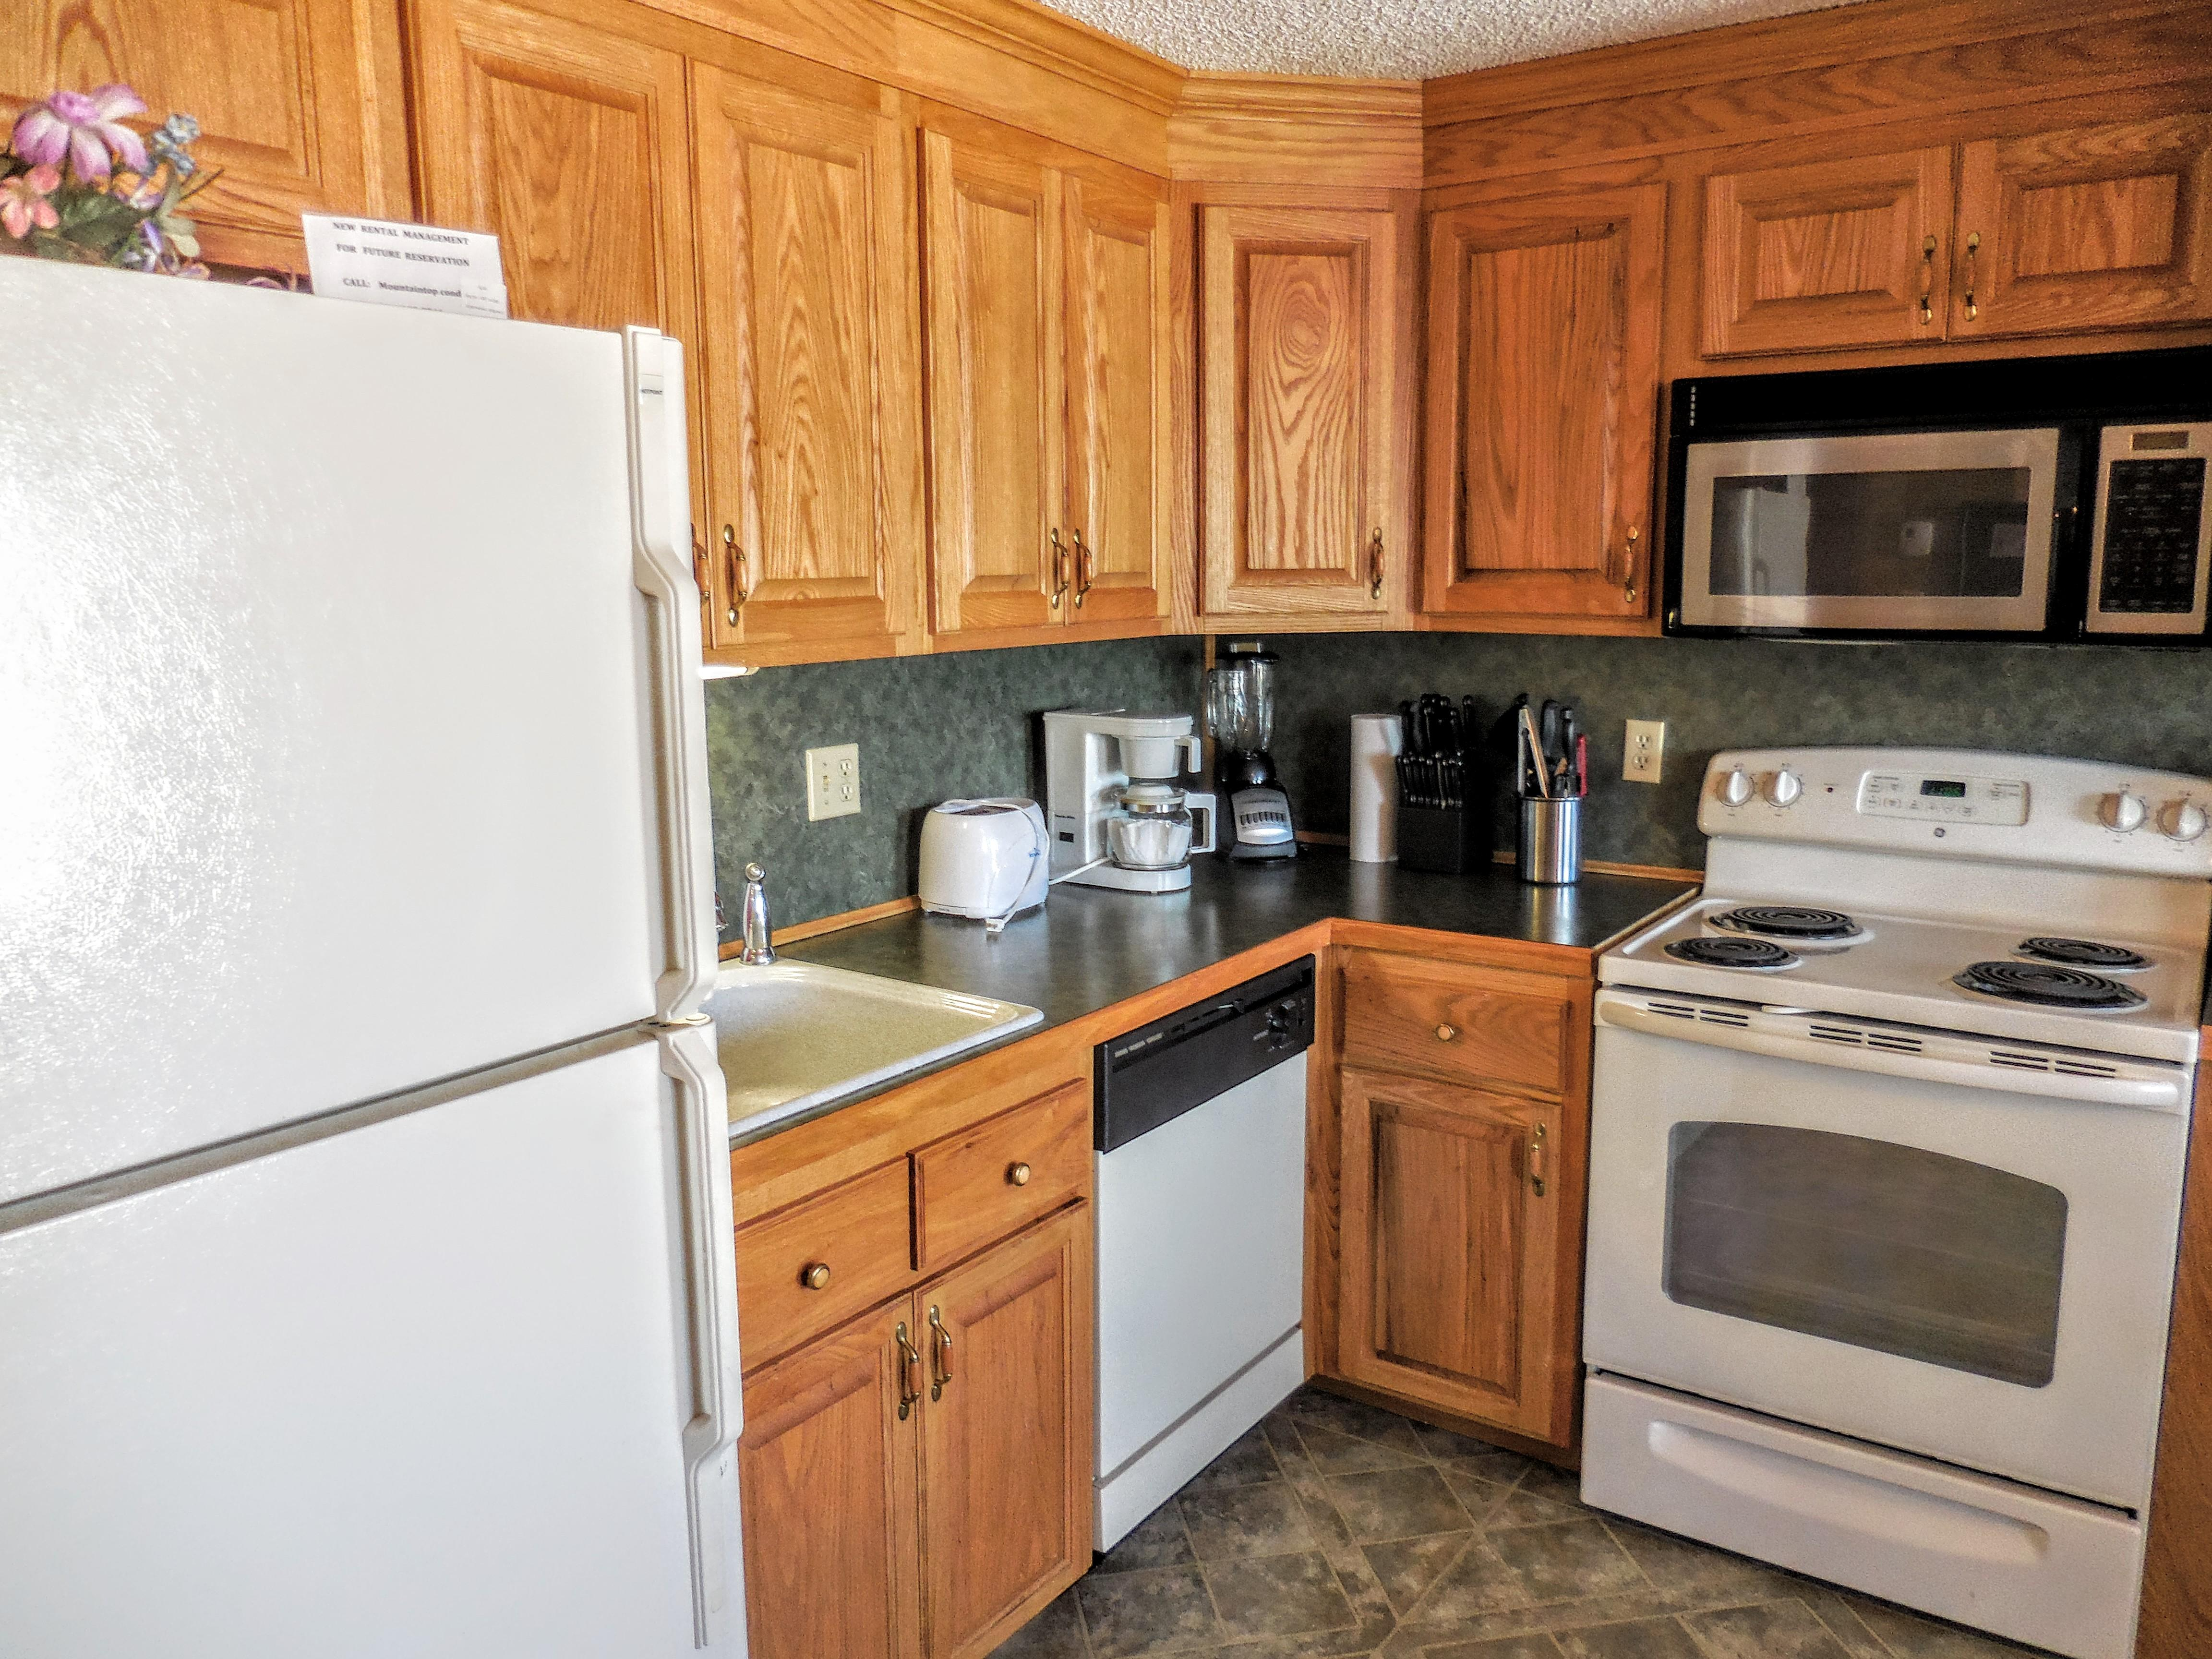 Fully-equipped kitchen with pots, pans, utensils, etc.